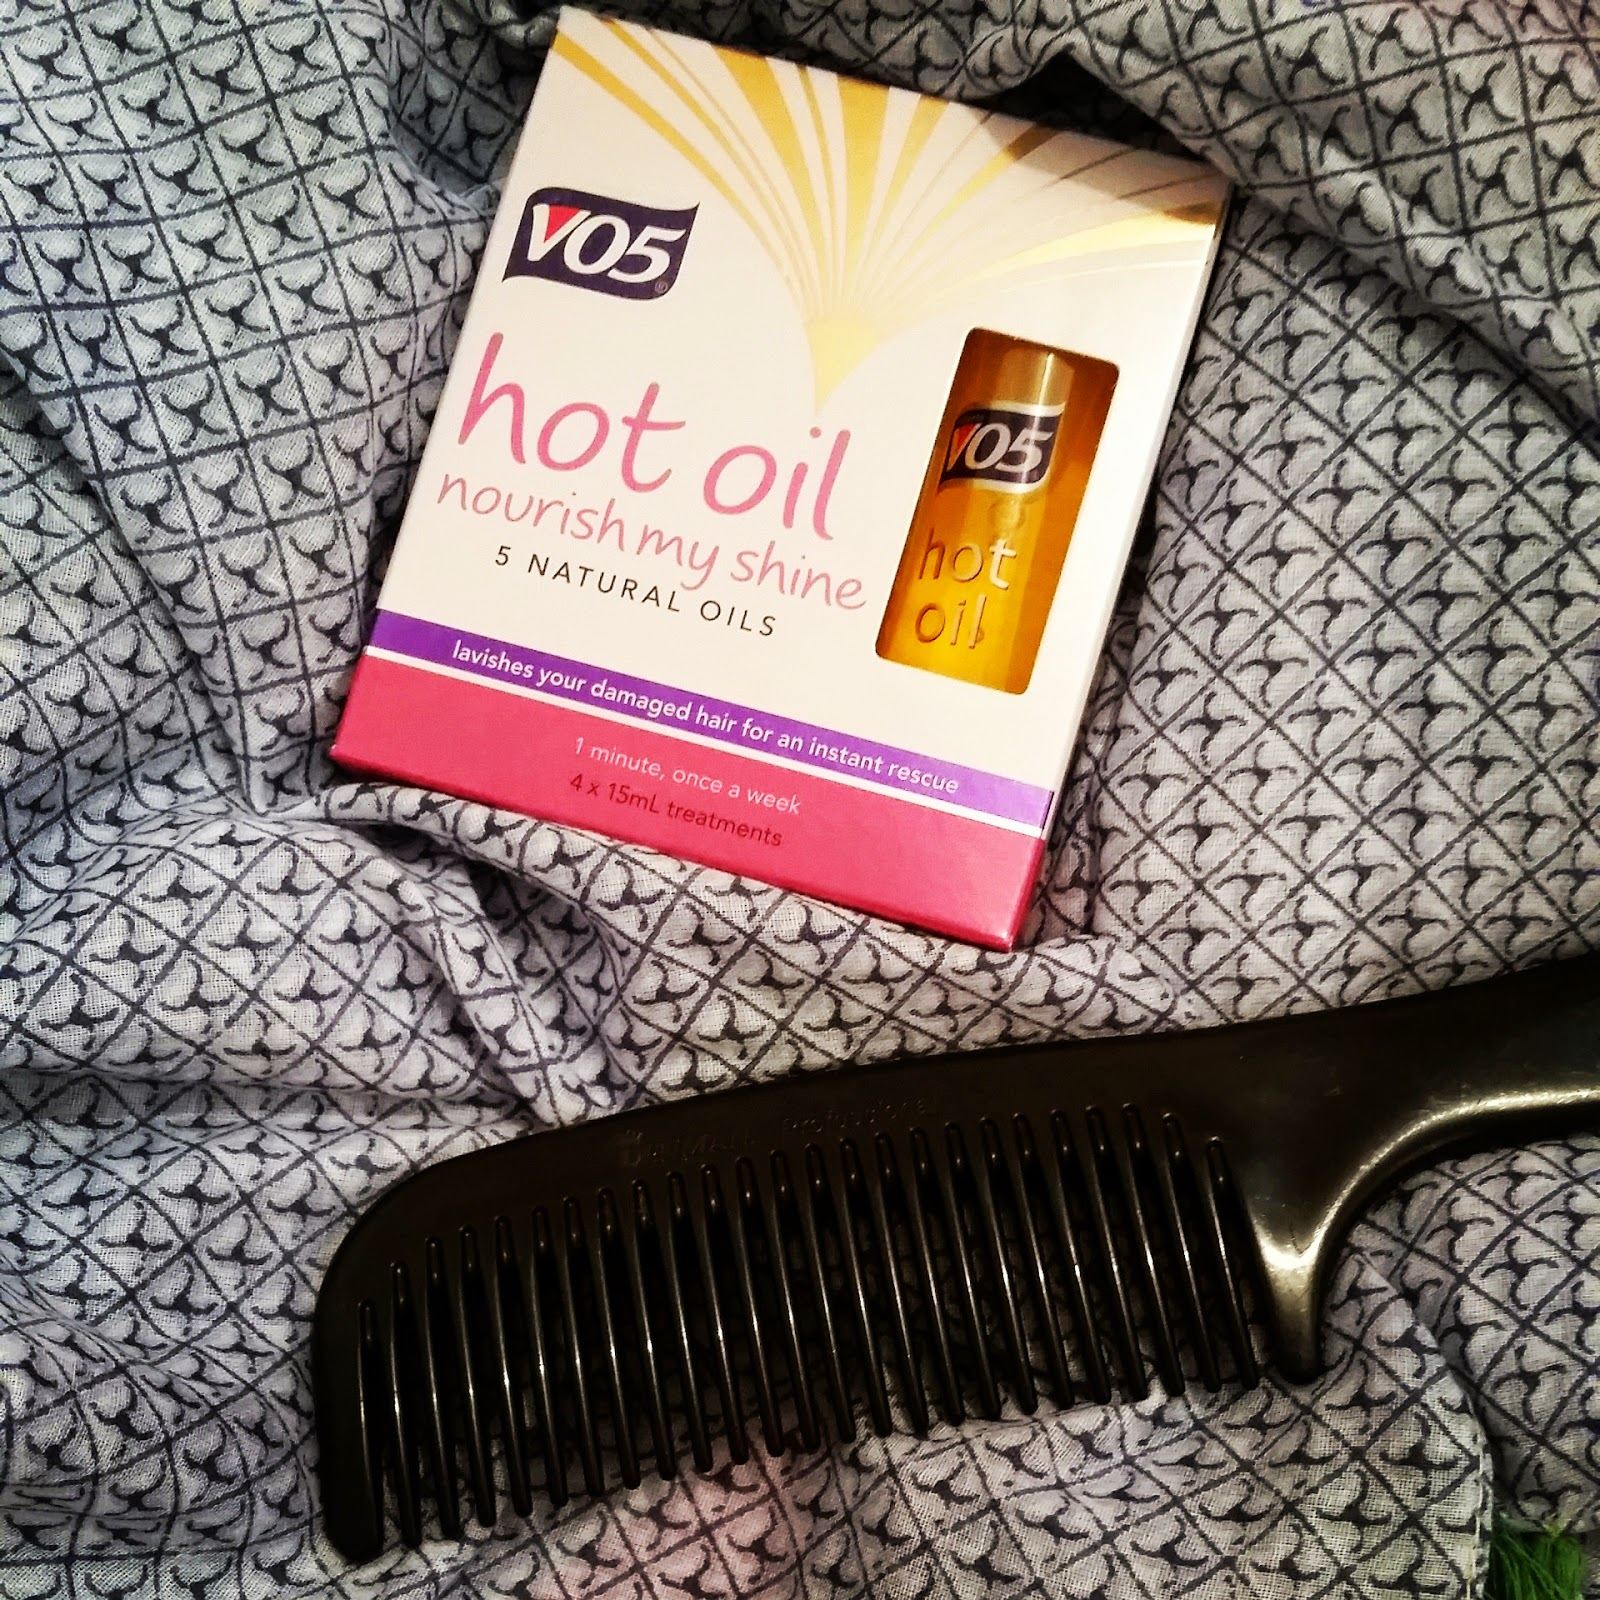 vo5 hot oil hair treatment instructions